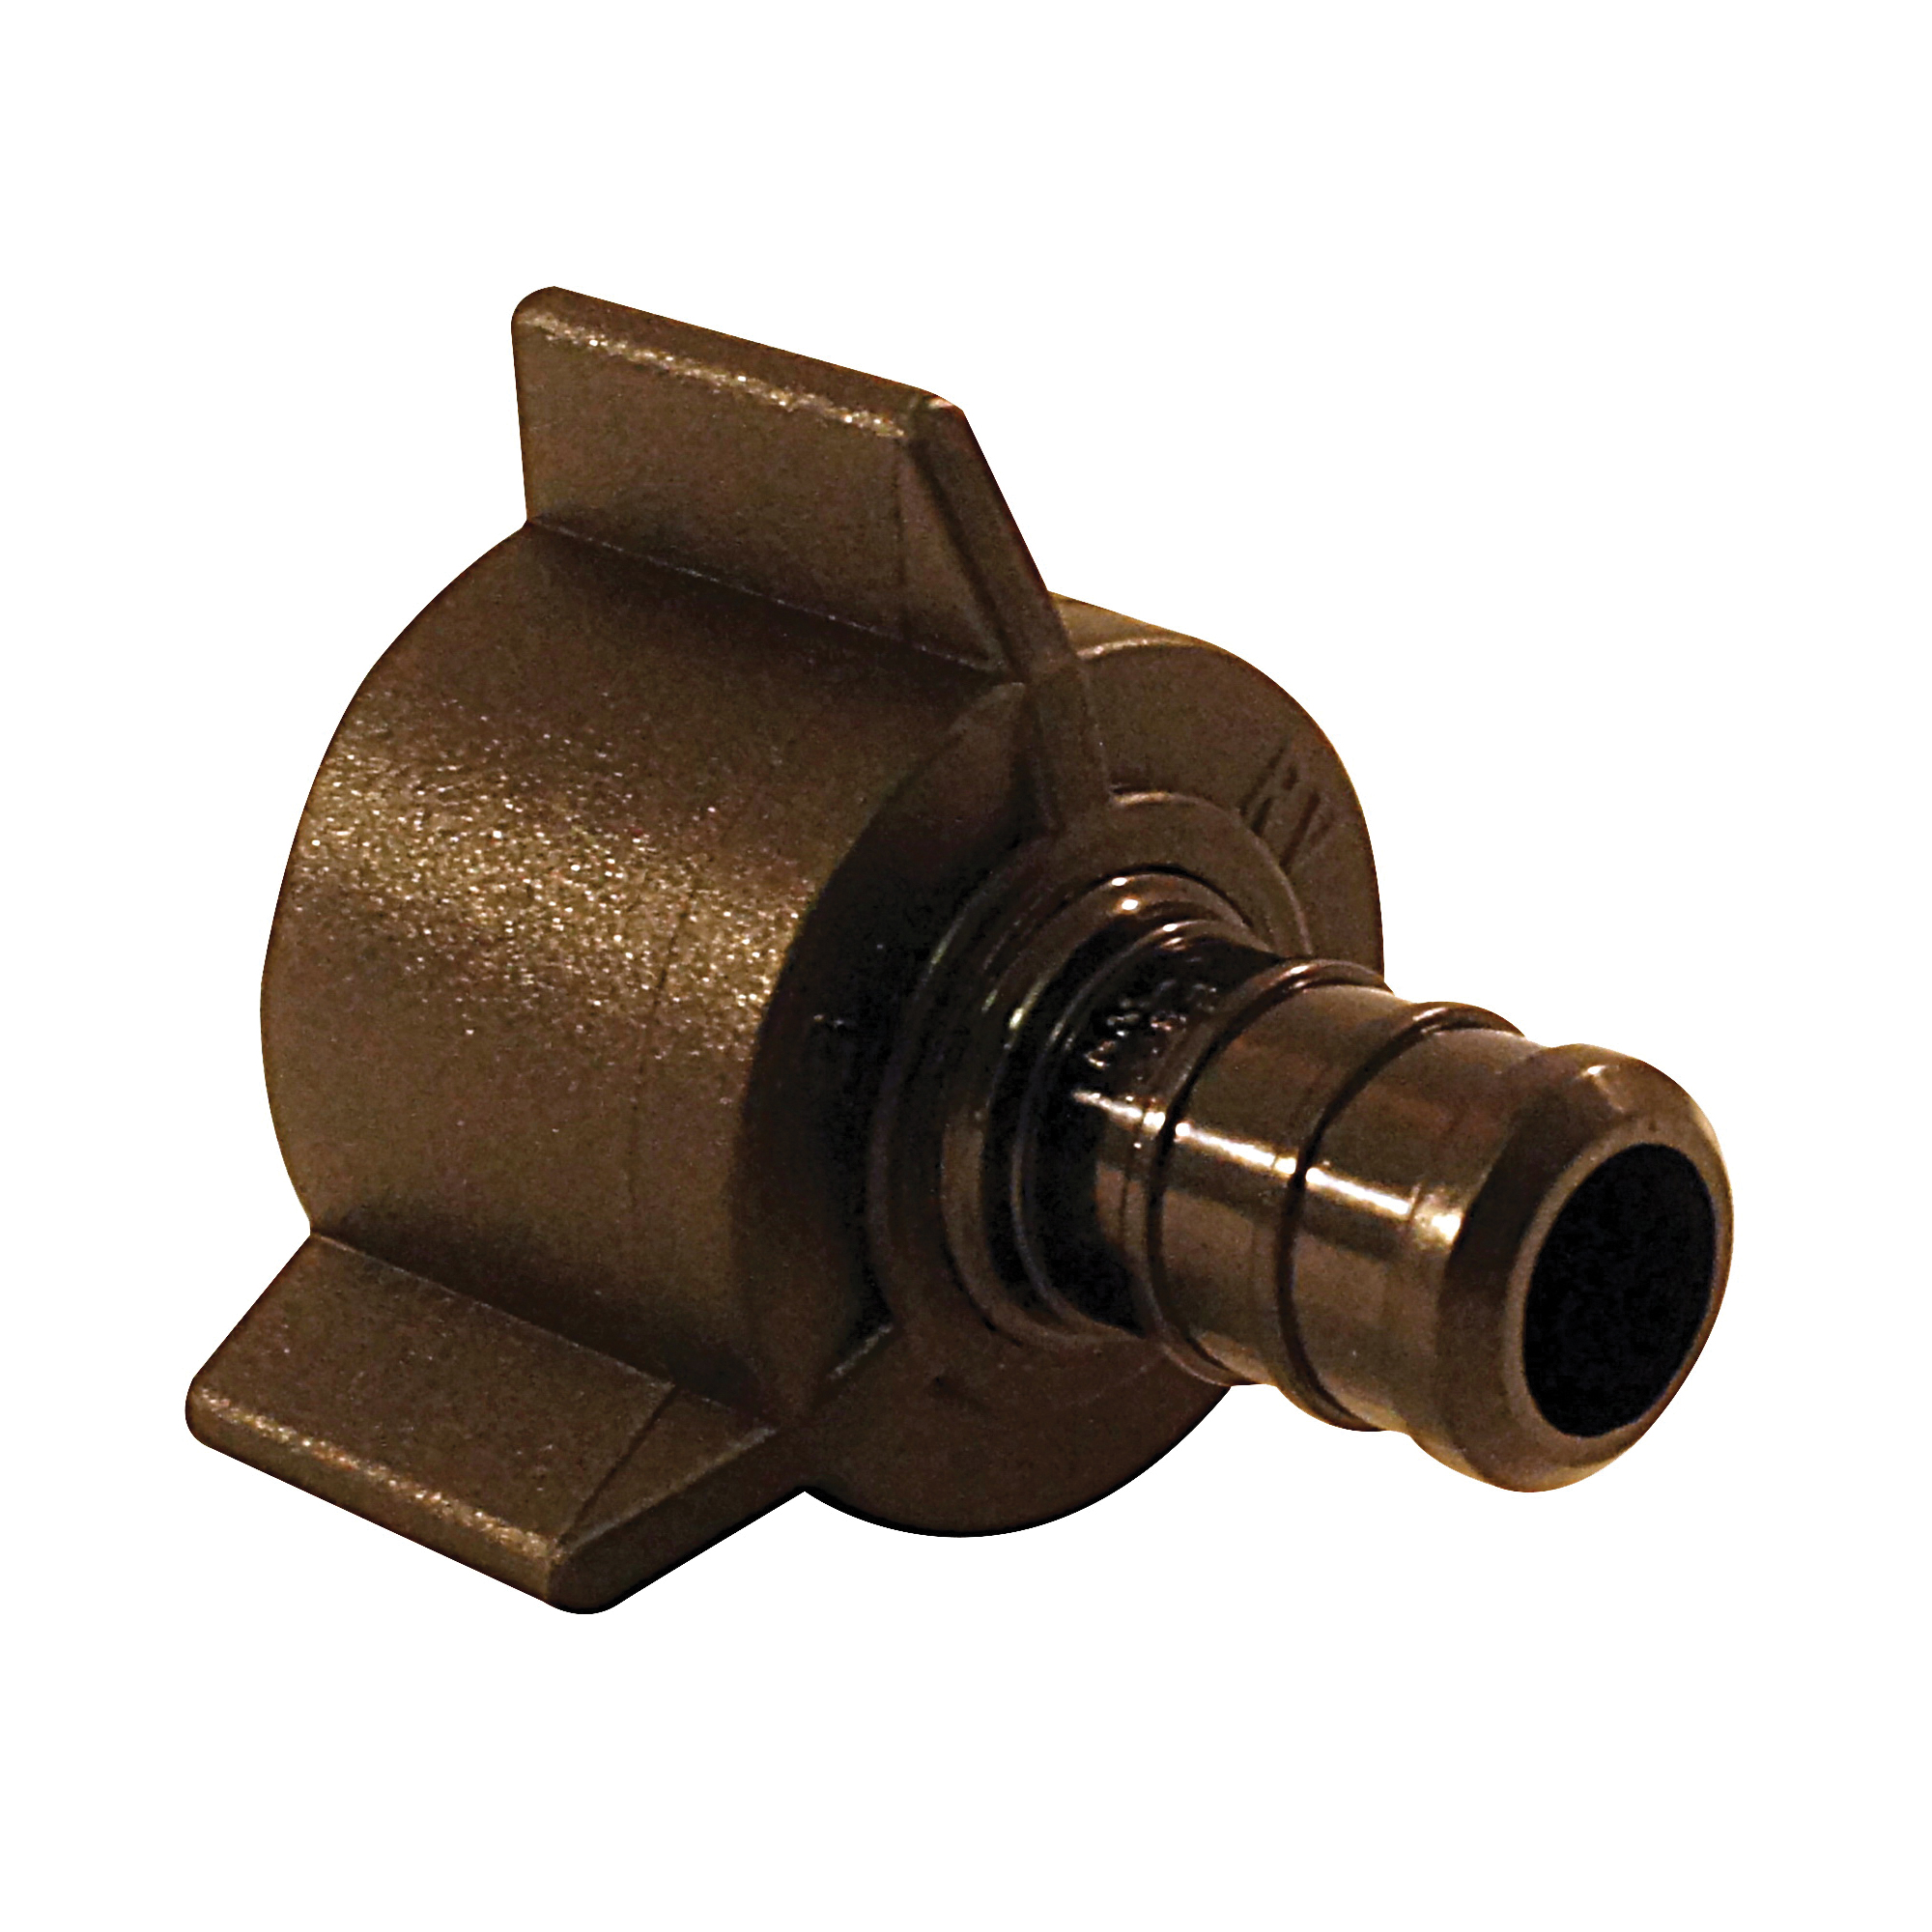 Picture of Apollo ApolloPEX PXPAF1212S5PK Swivel Adapter, 1/2 in, Barb x FPT, Poly Alloy, 200 psi Pressure